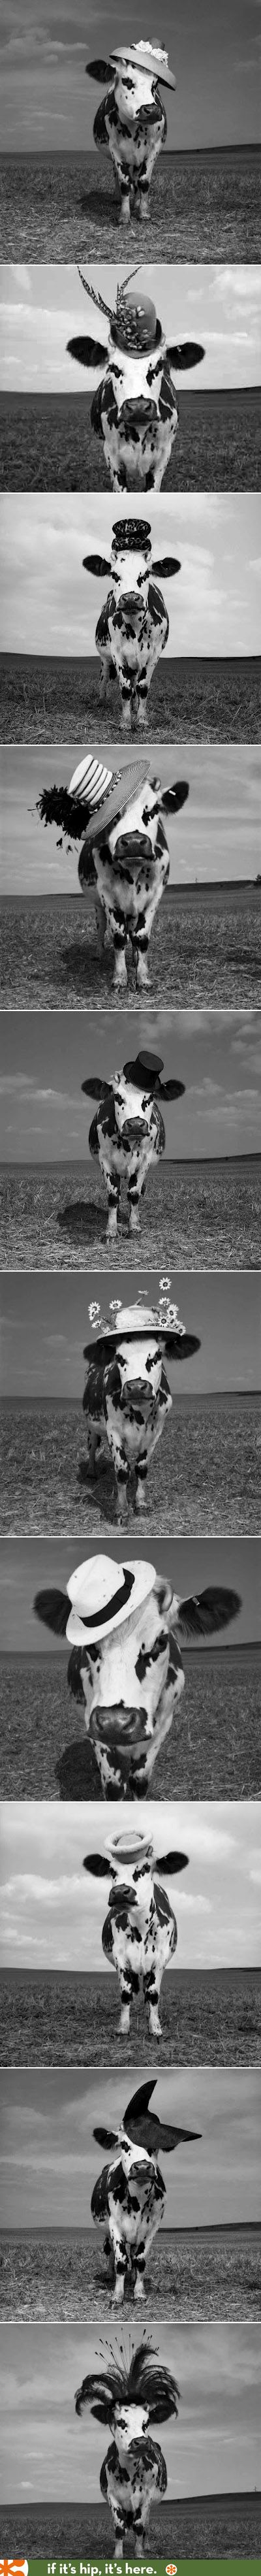 Hilarious images of Cows in Hats. (more at the link)